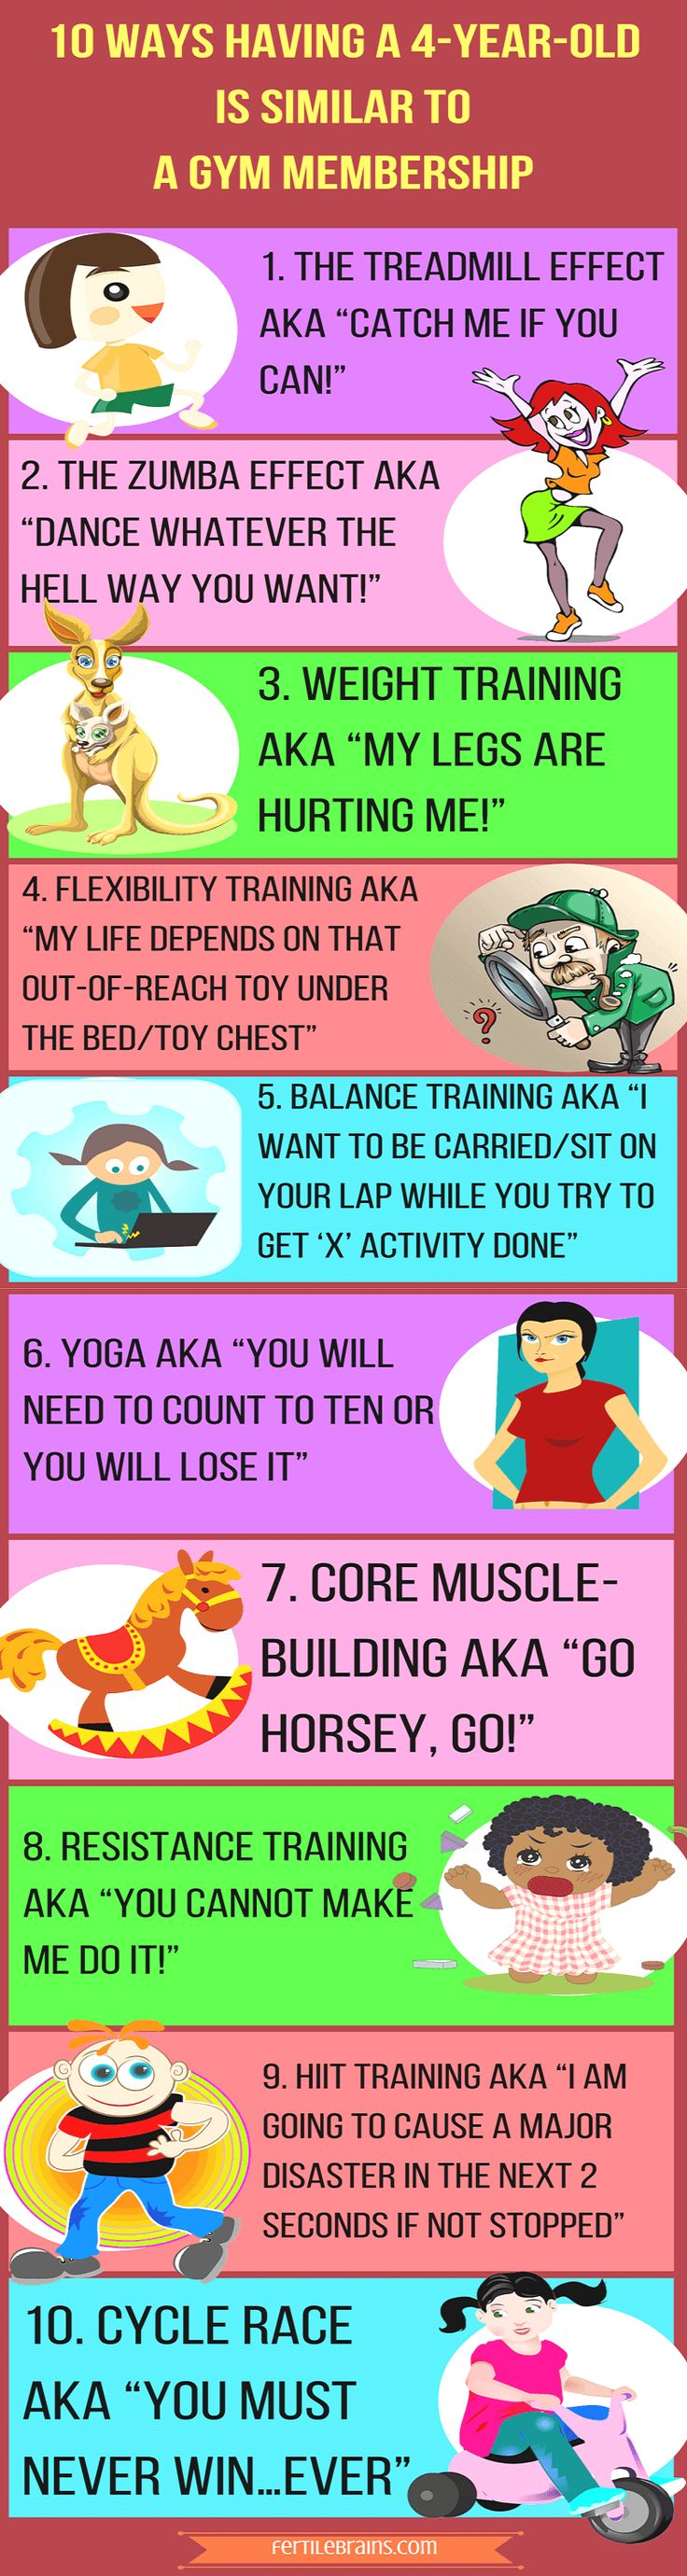 4-year-old's are a lot of hard work. Ask any mom of a 4-year-old and she will tell you how exhausted she feels at the end of the day. Here's why dealing with a 4-year-old  all day long is equivalent to a gruelling gym workout session. Parenting Humor. Read Now and/or Pin For Later #family